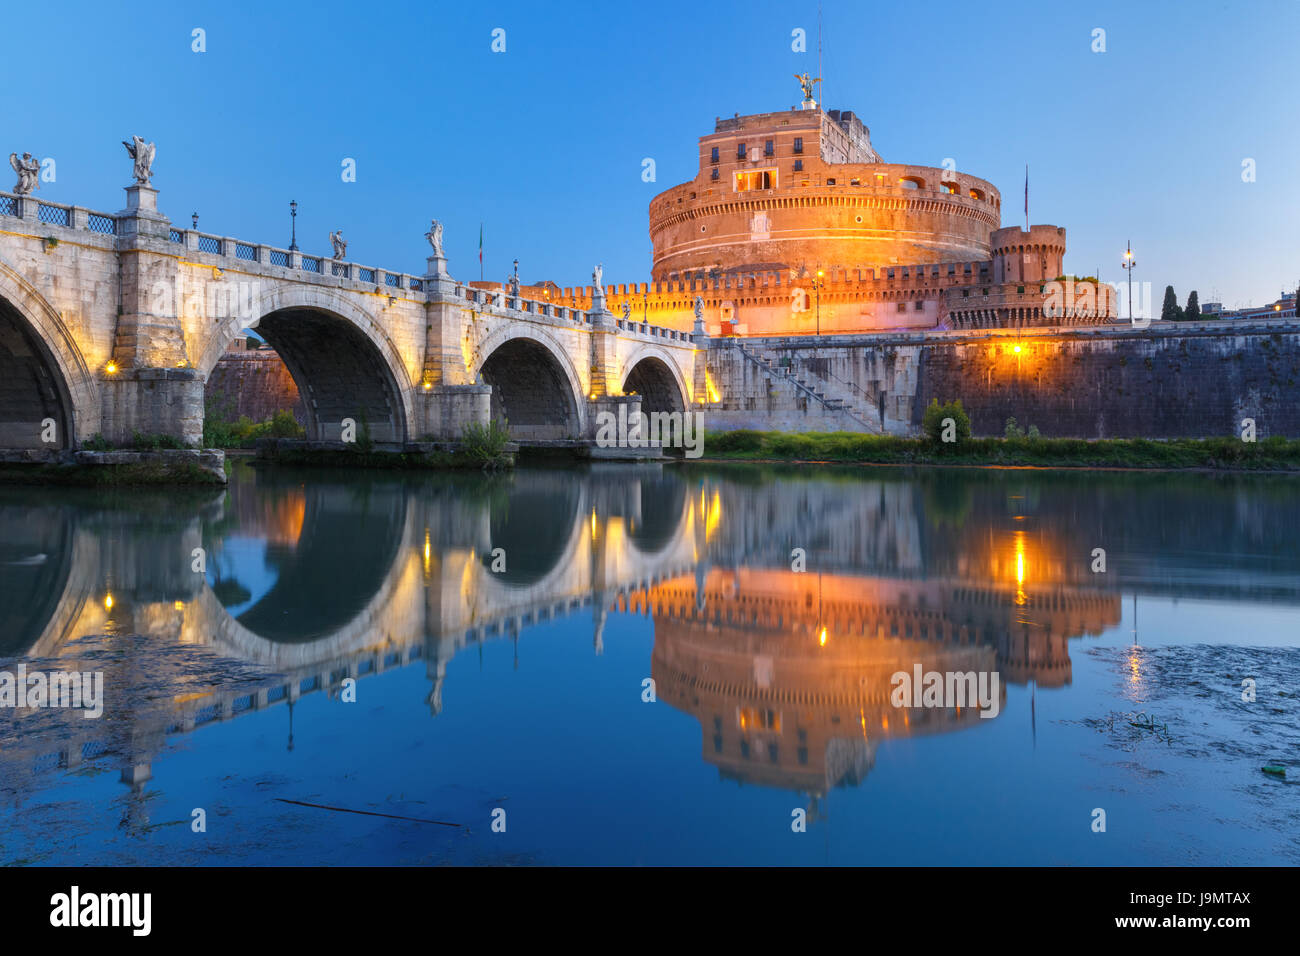 Saint Angel castle and bridge, Rome, Italy - Stock Image